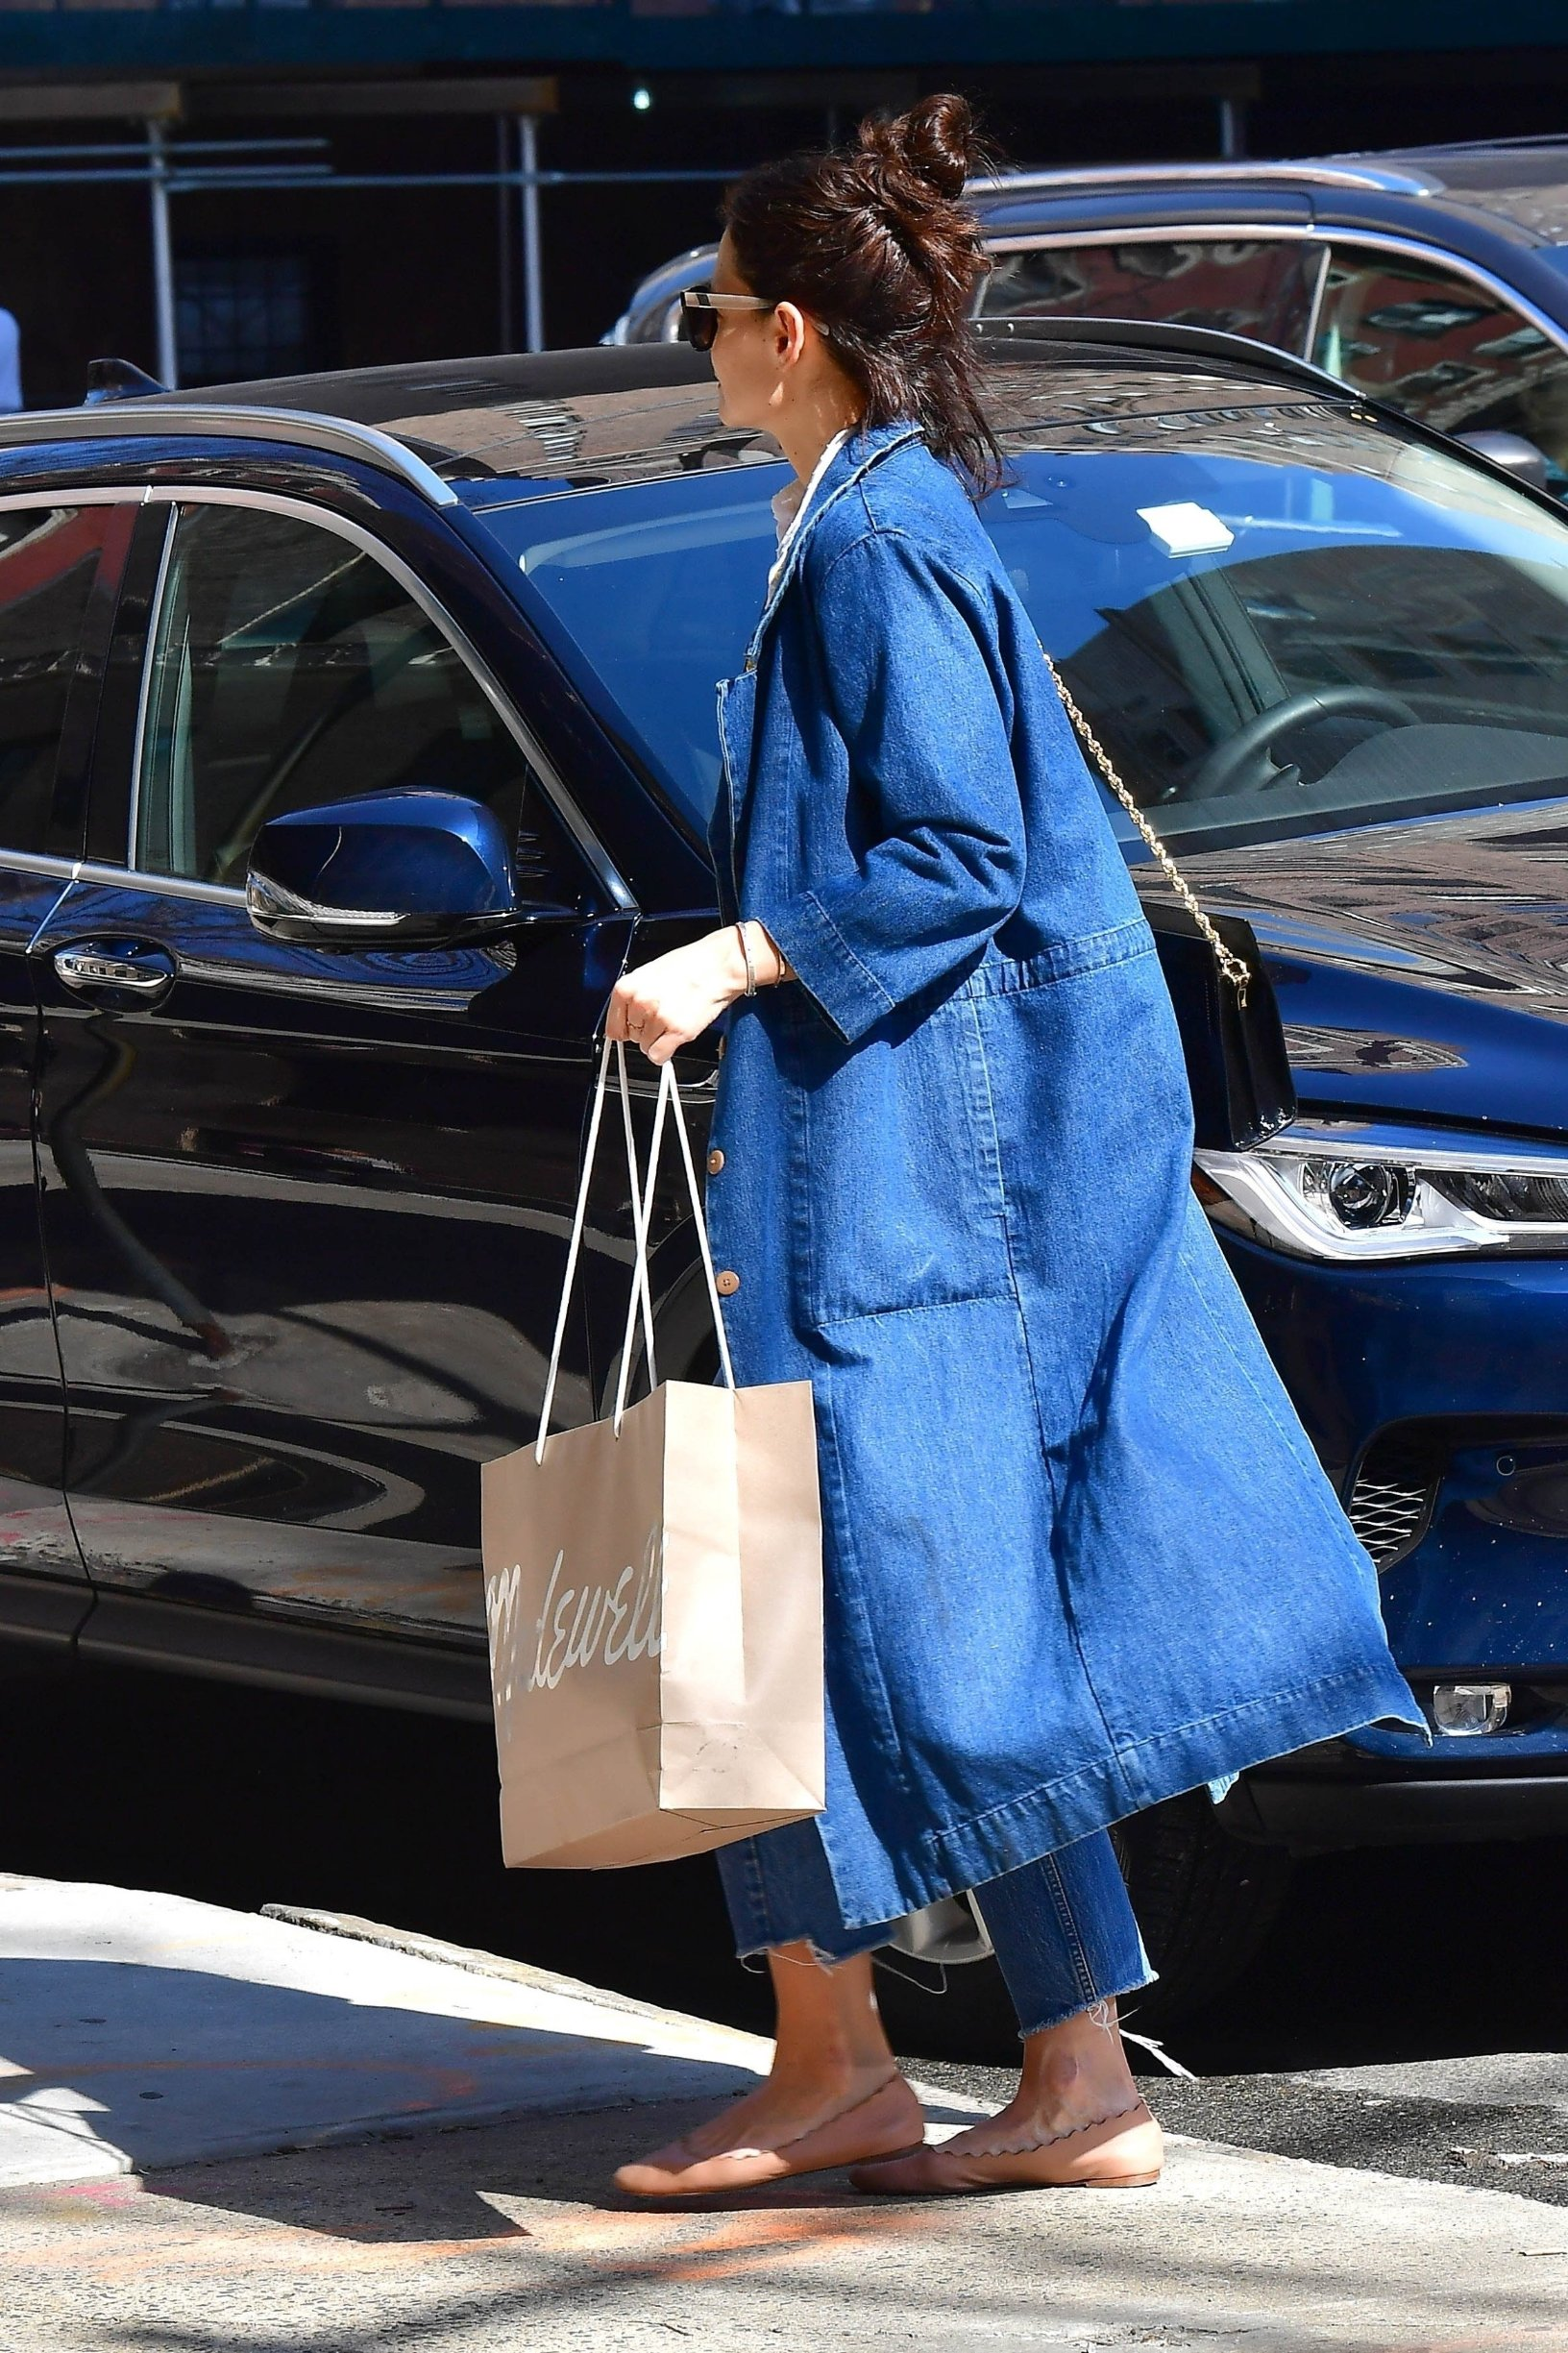 ** RIGHTS: WORLDWIDE EXCEPT IN FRANCE, GERMANY, POLAND ** New York, NY  - Actress Katie Holmes feeling blue wearing shades of blue with her ensemble today as she endulges into some retail therapy at Madewell.  With rumors swirling that she and Jamie Foxx have split, perhaps Katie was looking to cheer herself up with a shopping spree.  Pictured: Katie Holmes  BACKGRID USA 14 MARCH 2019, Image: 419475763, License: Rights-managed, Restrictions: , Model Release: no, Credit line: Profimedia, Backgrid USA